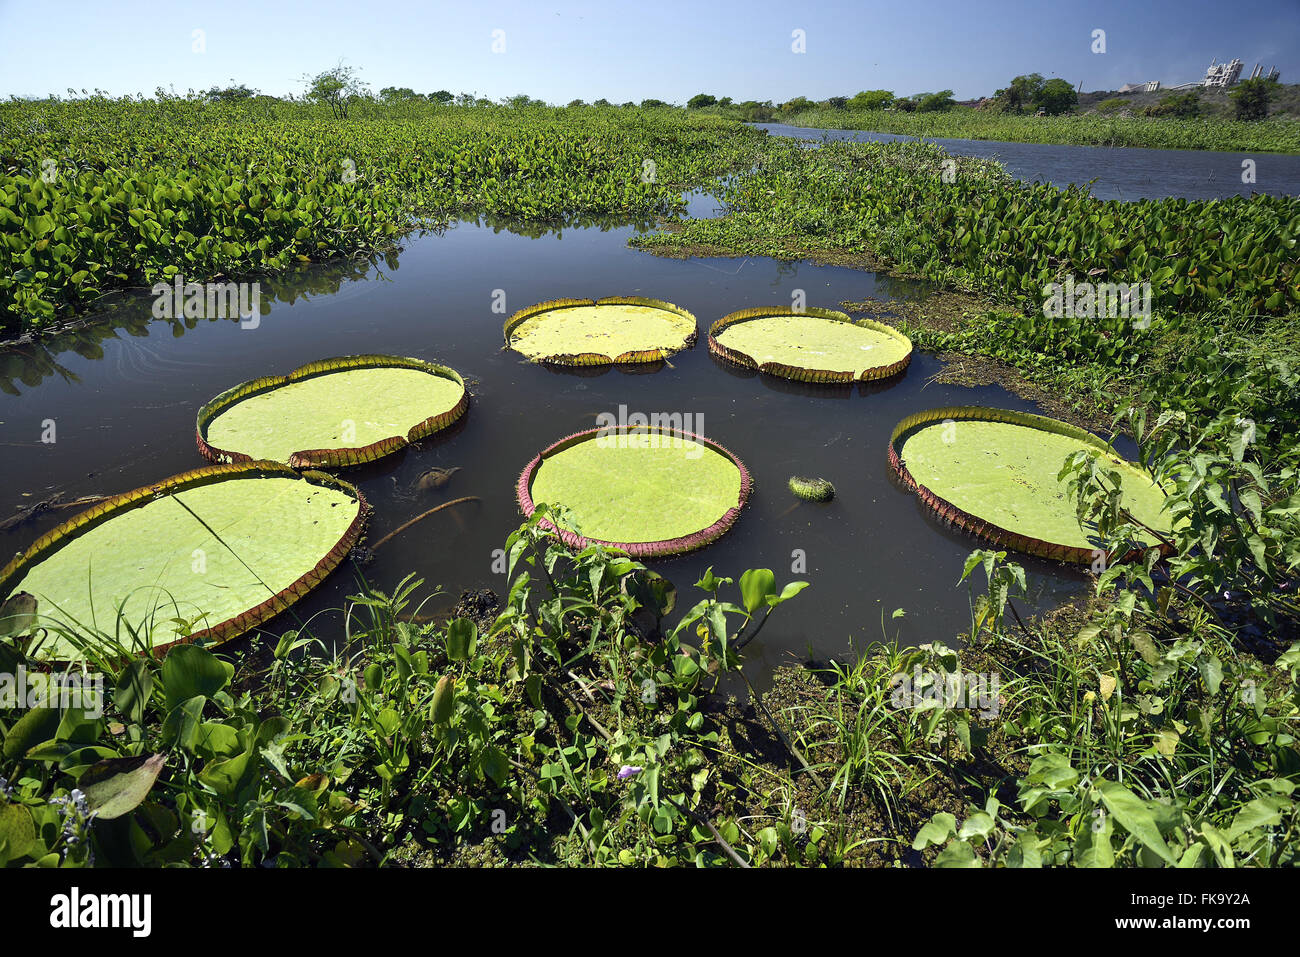 Water lilies in the river Paraguay - Stock Image